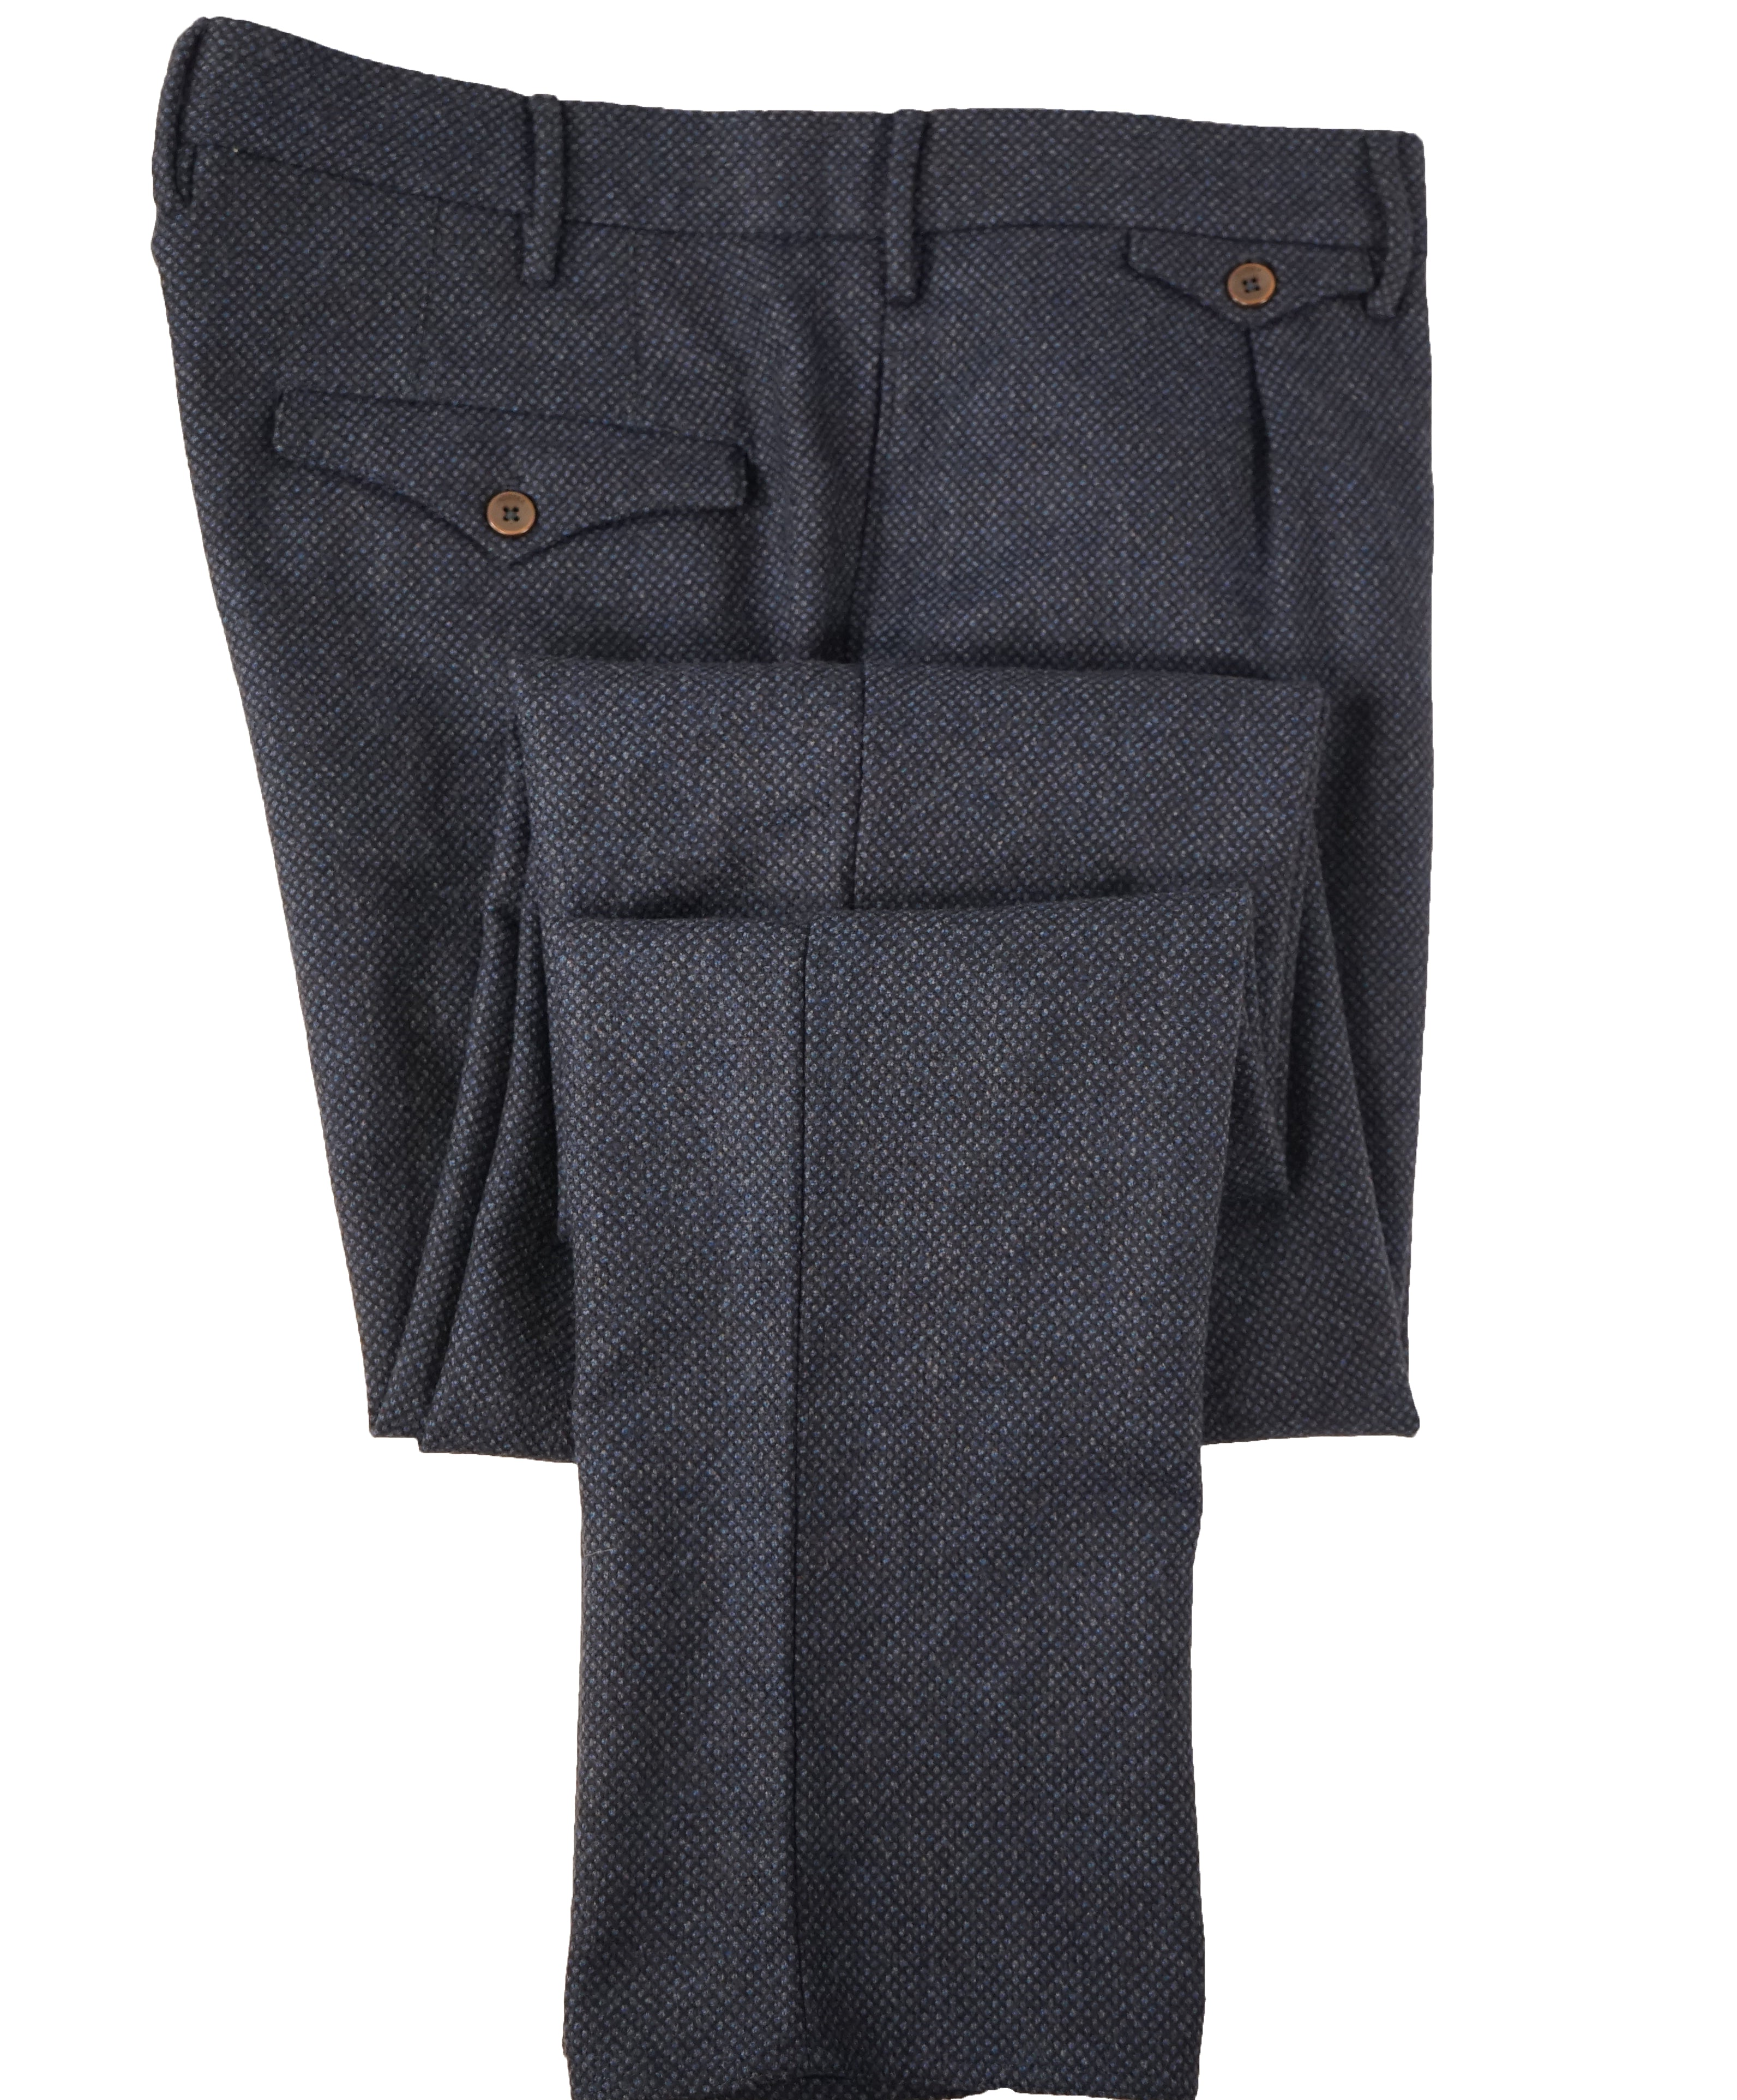 INCOTEX - Pure Wool Blue Textured Slim Fit Pants w Coin Pocket  - 37W